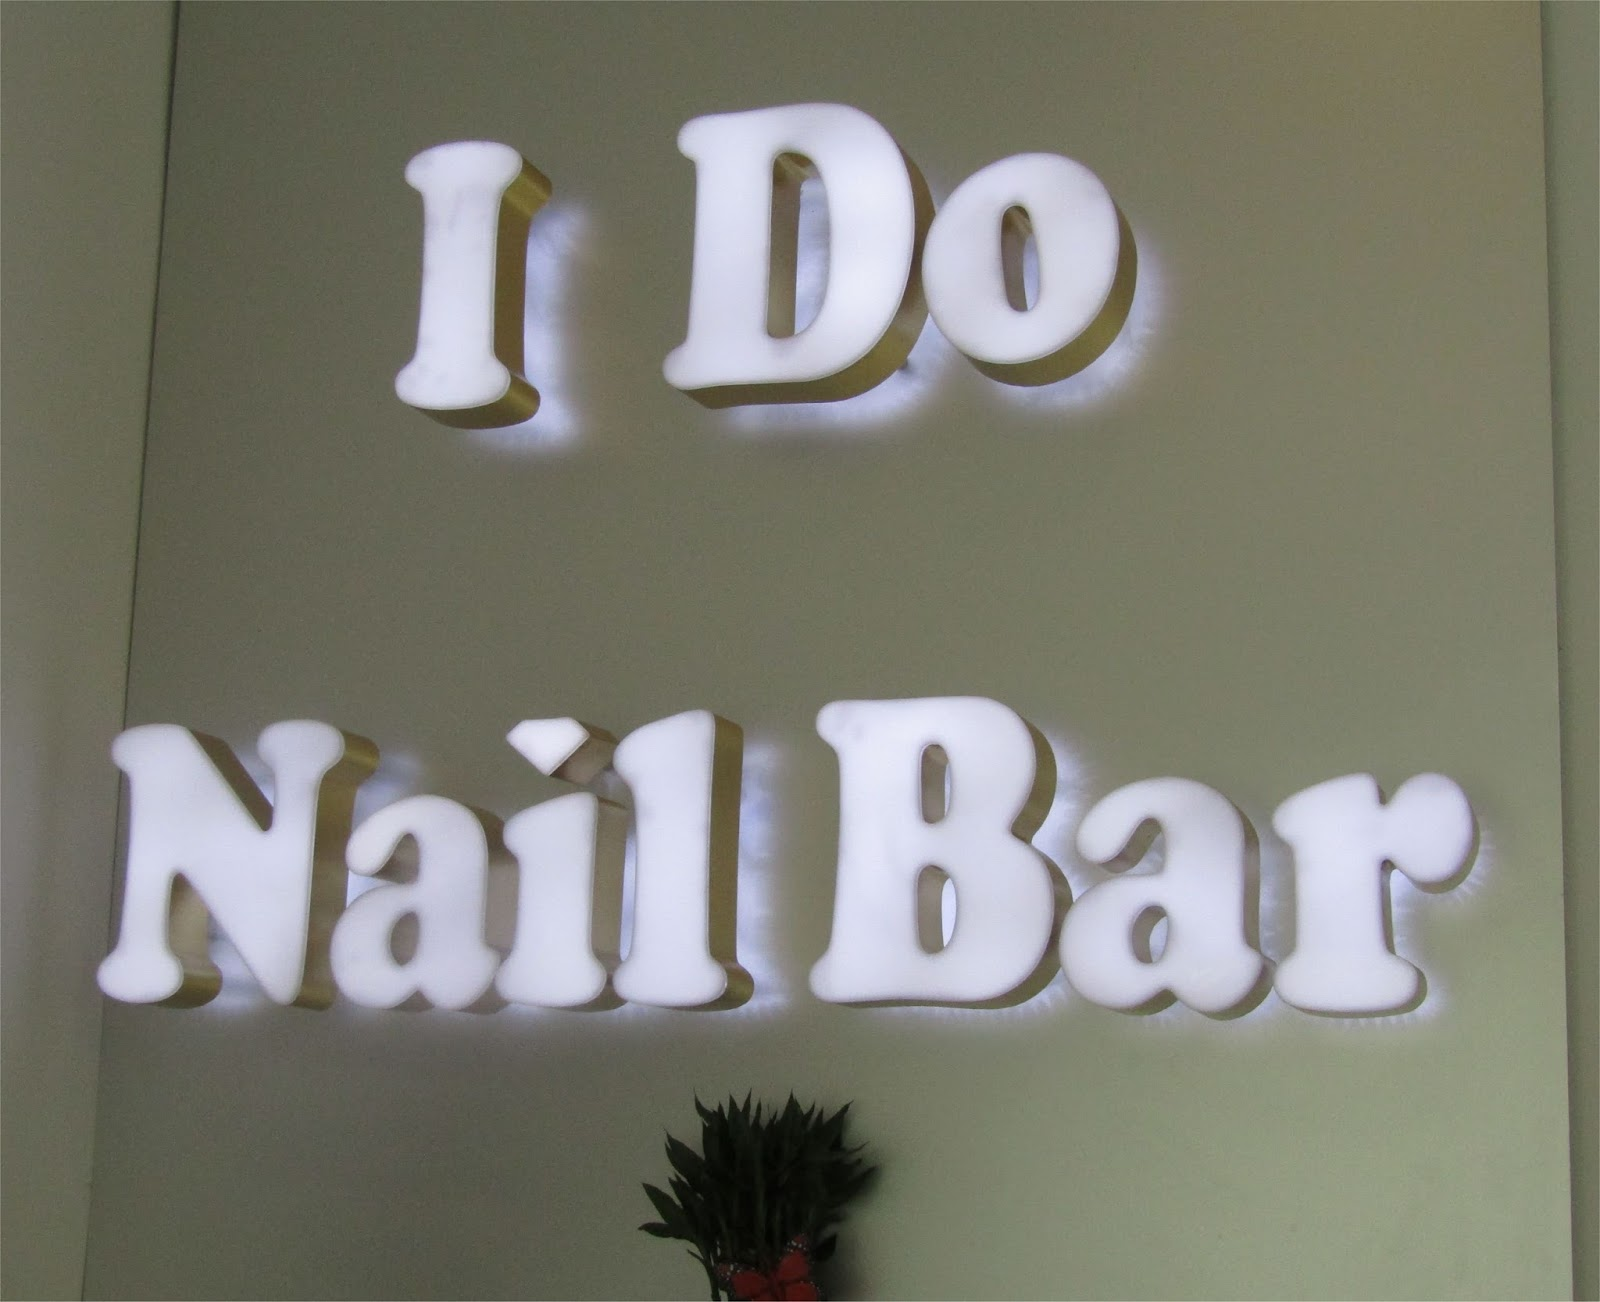 I Do Nail Bar Opened Earlier This Month At 50 Great Road Which Was The Former Location Of Orange Chair Recently Spoke With Maggie Li Owner